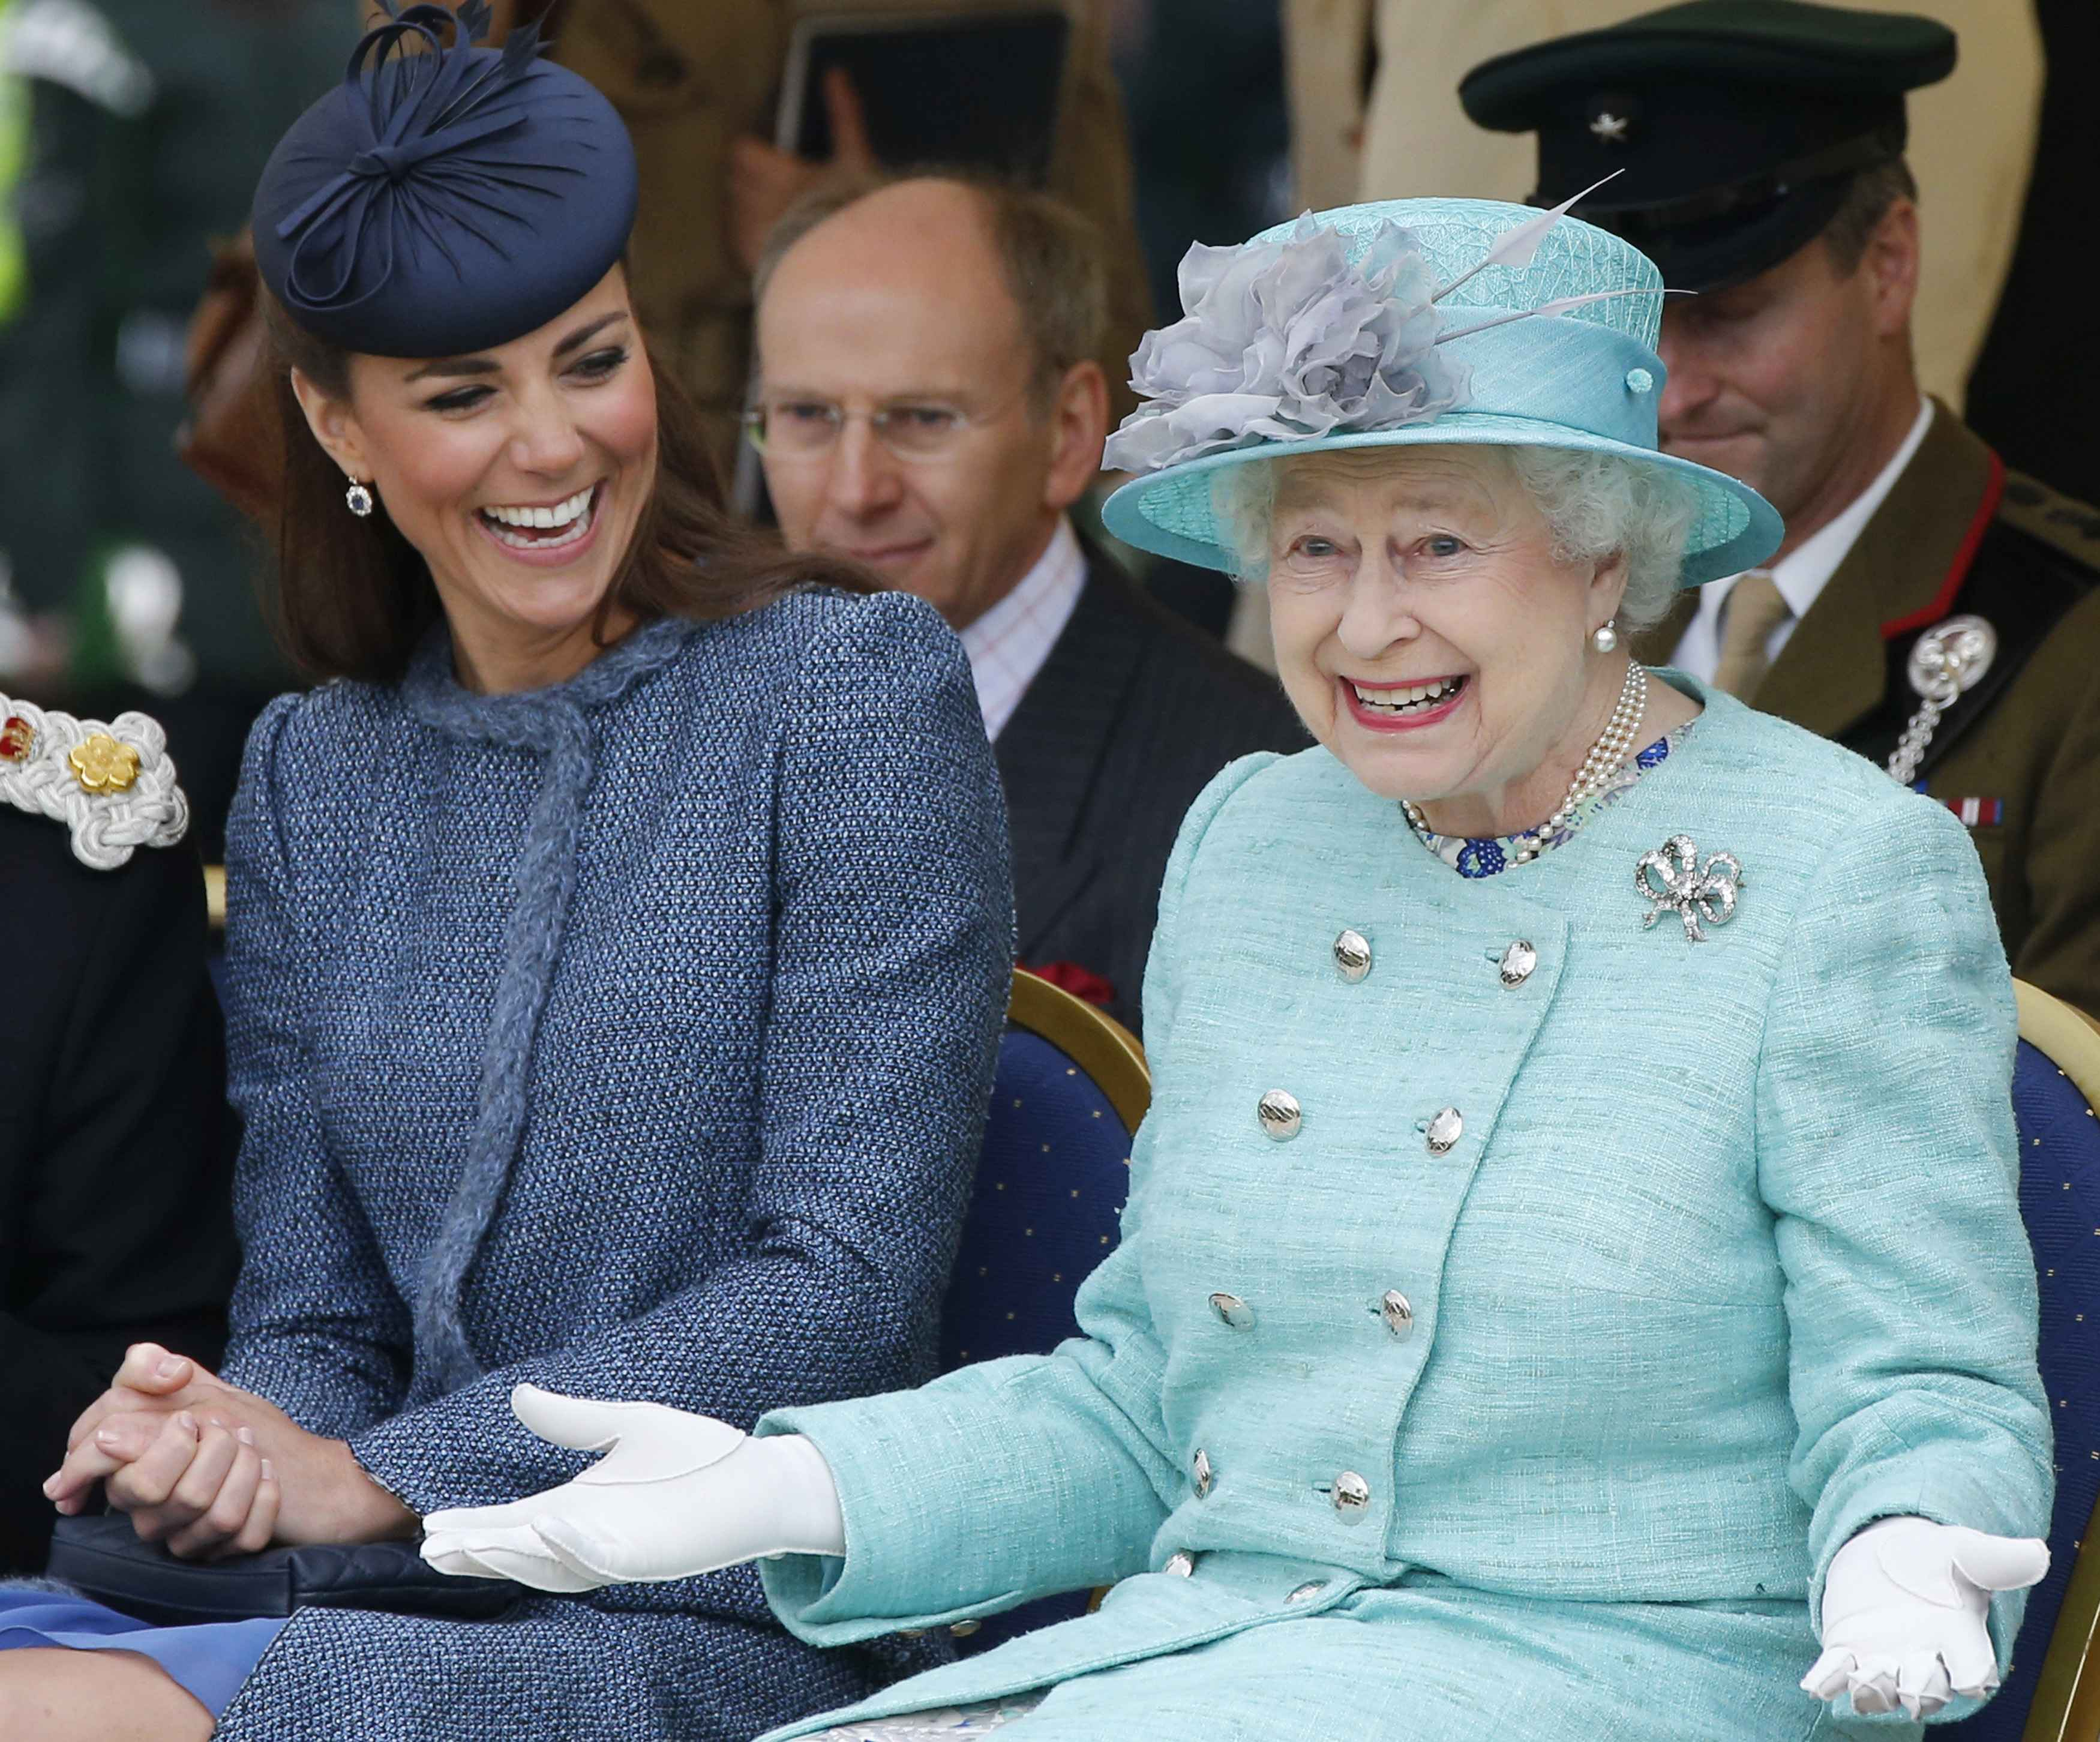 NOTTINGHAM, ENGLAND - JUNE 13: Catherine, Duchess of Cambridge and Queen Elizabeth II watch part of a children's sports event while visiting Vernon Park during a Diamond Jubilee visit to Nottingham on June 13, 2012 in Nottingham, England. (Photo by Phil Noble - WPA Pool/Getty Images)